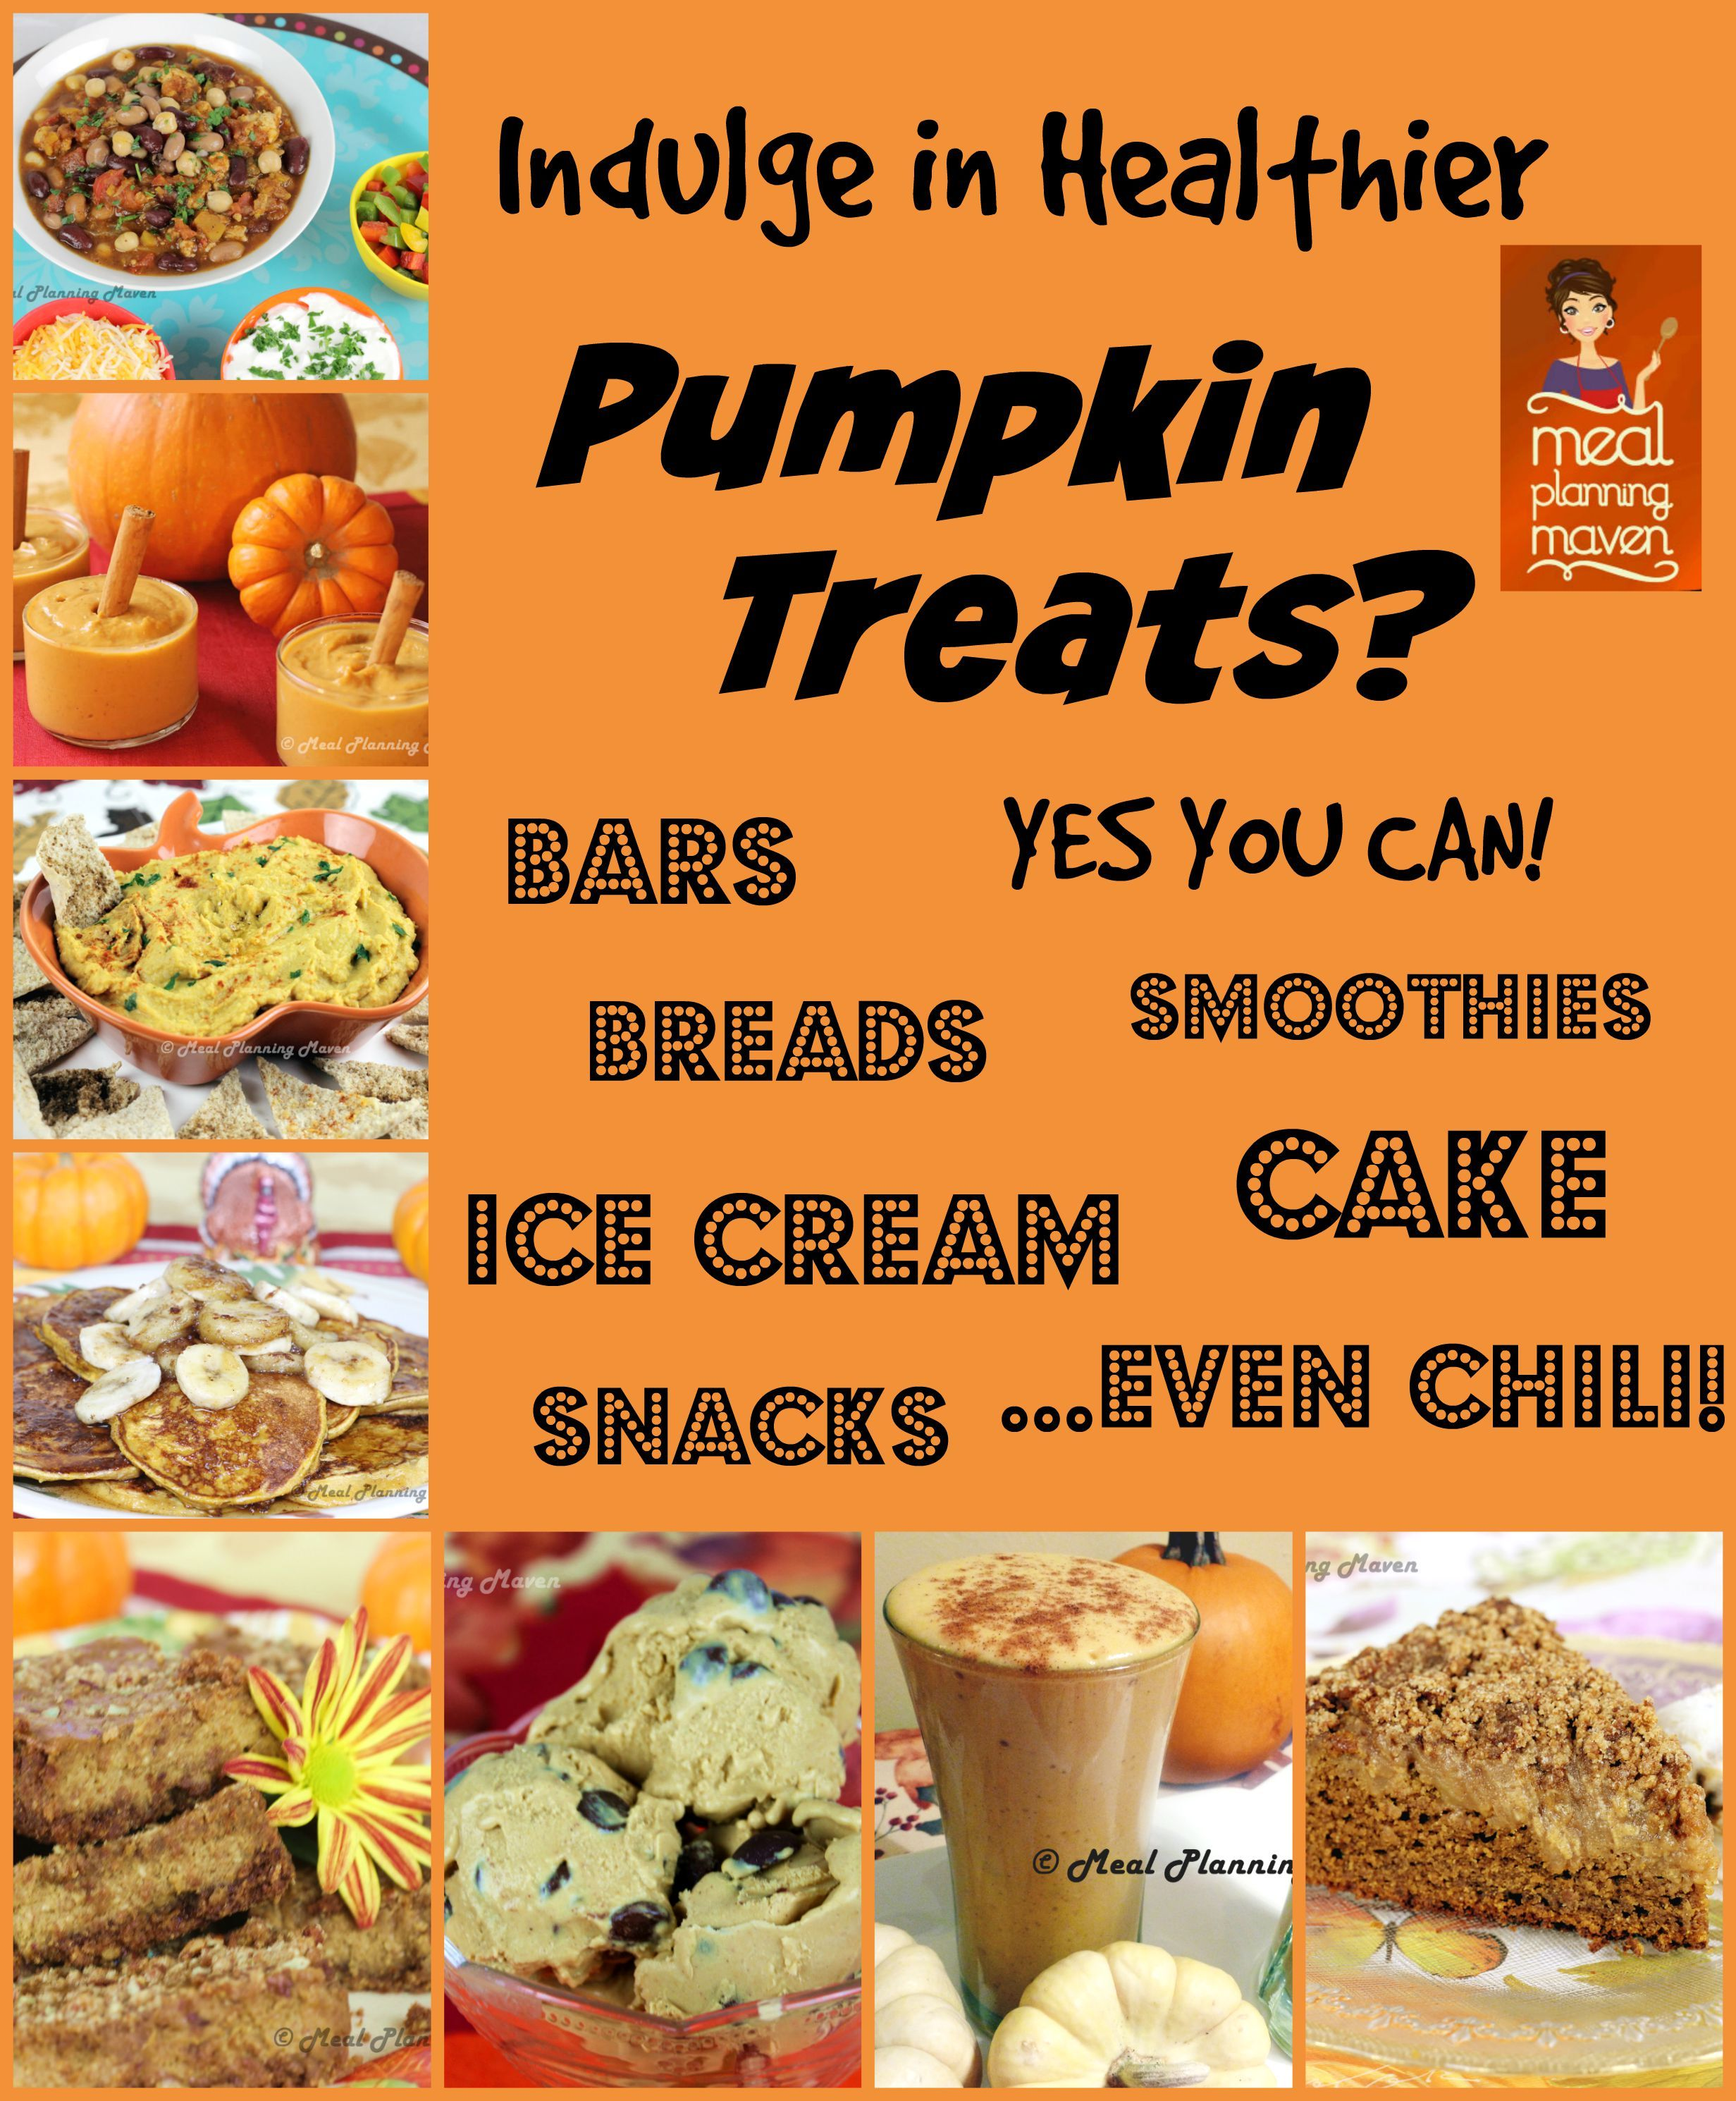 Indulge In Healthier Pumpkin Treats Yes You Can With